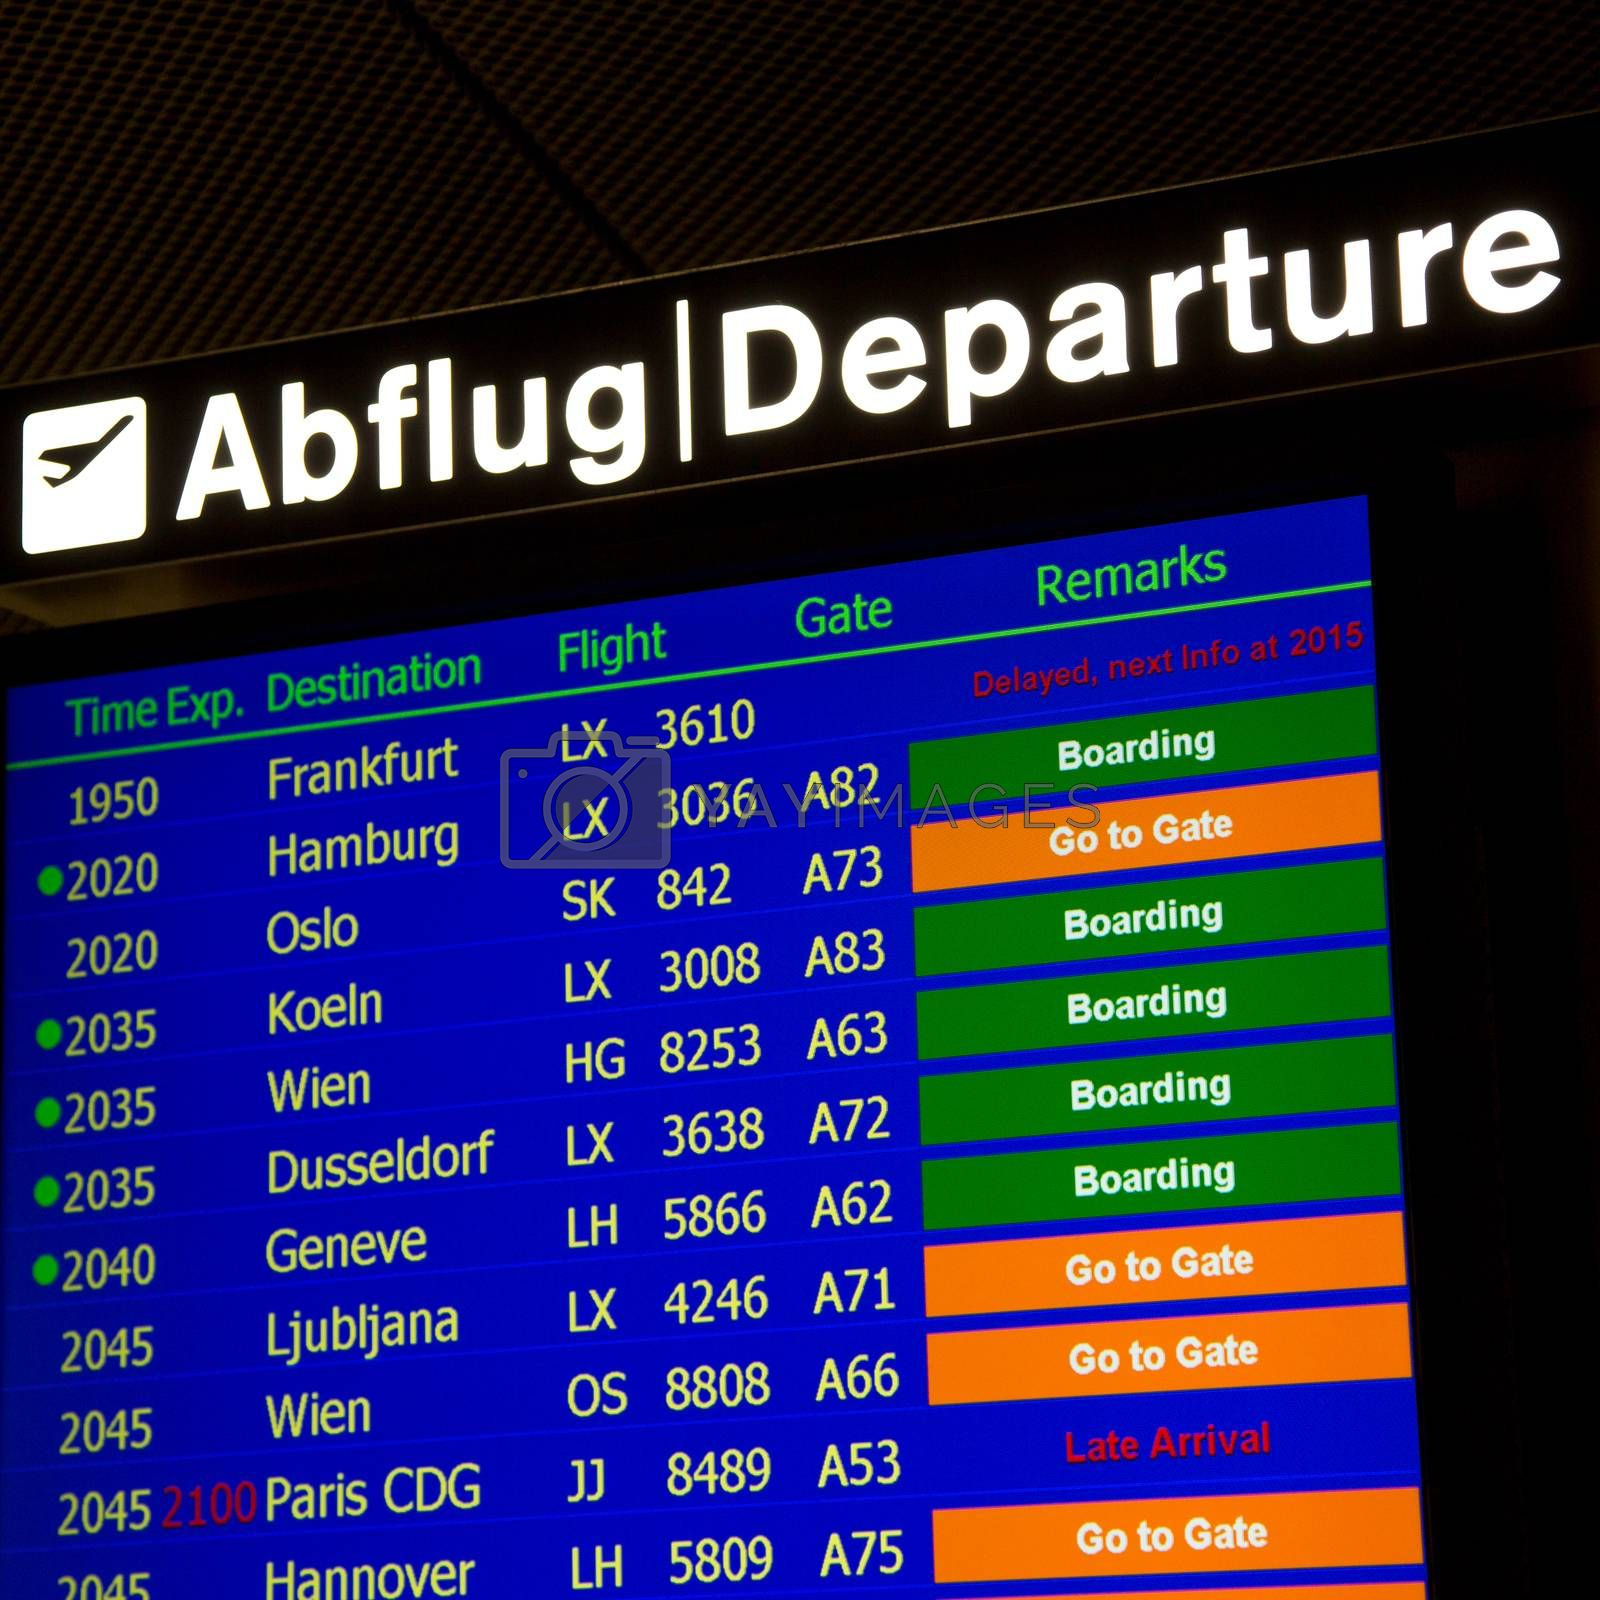 Airport departure board in terminal with flight information